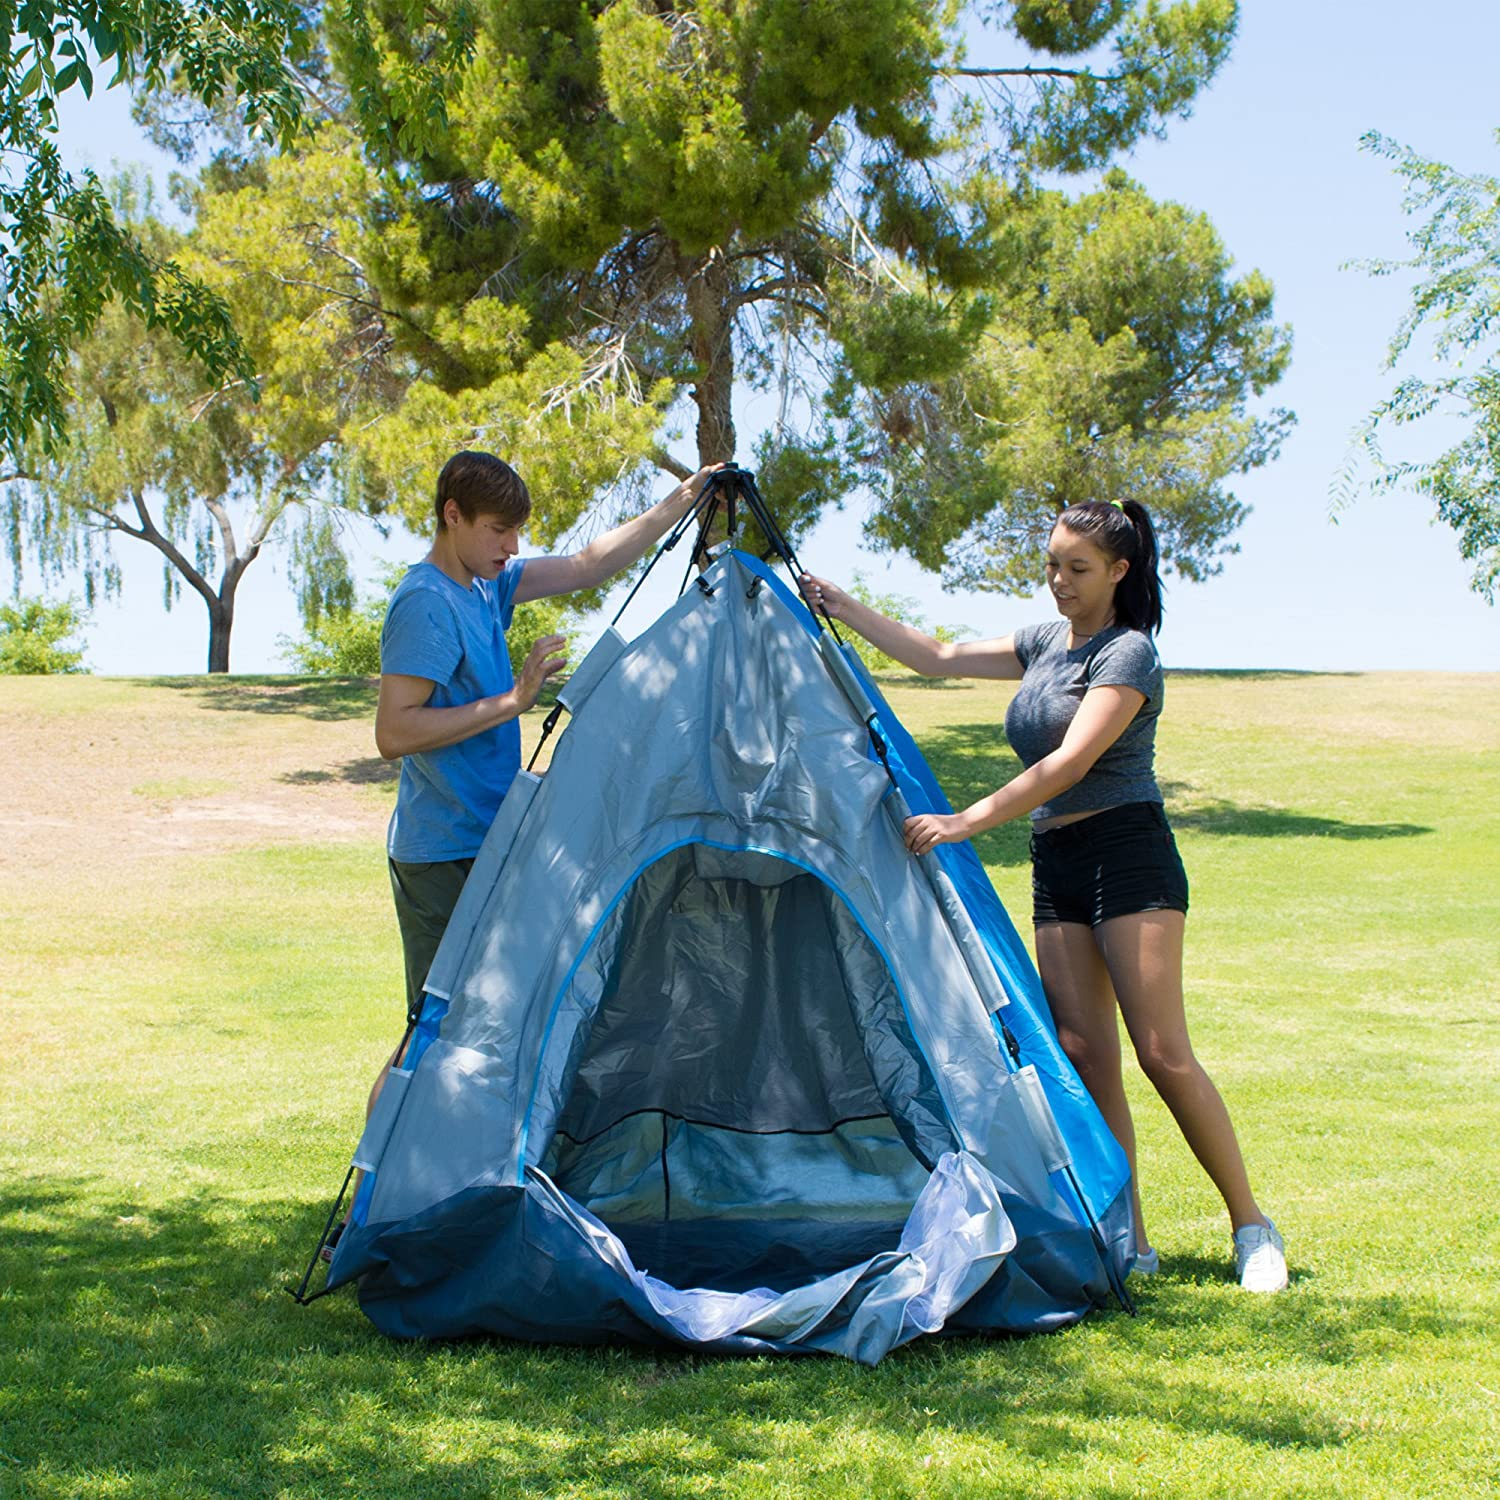 Amazon.com  Eagletail Outdoor Instant Tent; 3-Person Automatic C&ing Tent - Quick Easy 3-Step Setup - Family Tent for Indoor/Outdoor Use  Sports u0026 ...  sc 1 st  Amazon.com & Amazon.com : Eagletail Outdoor Instant Tent; 3-Person Automatic ...